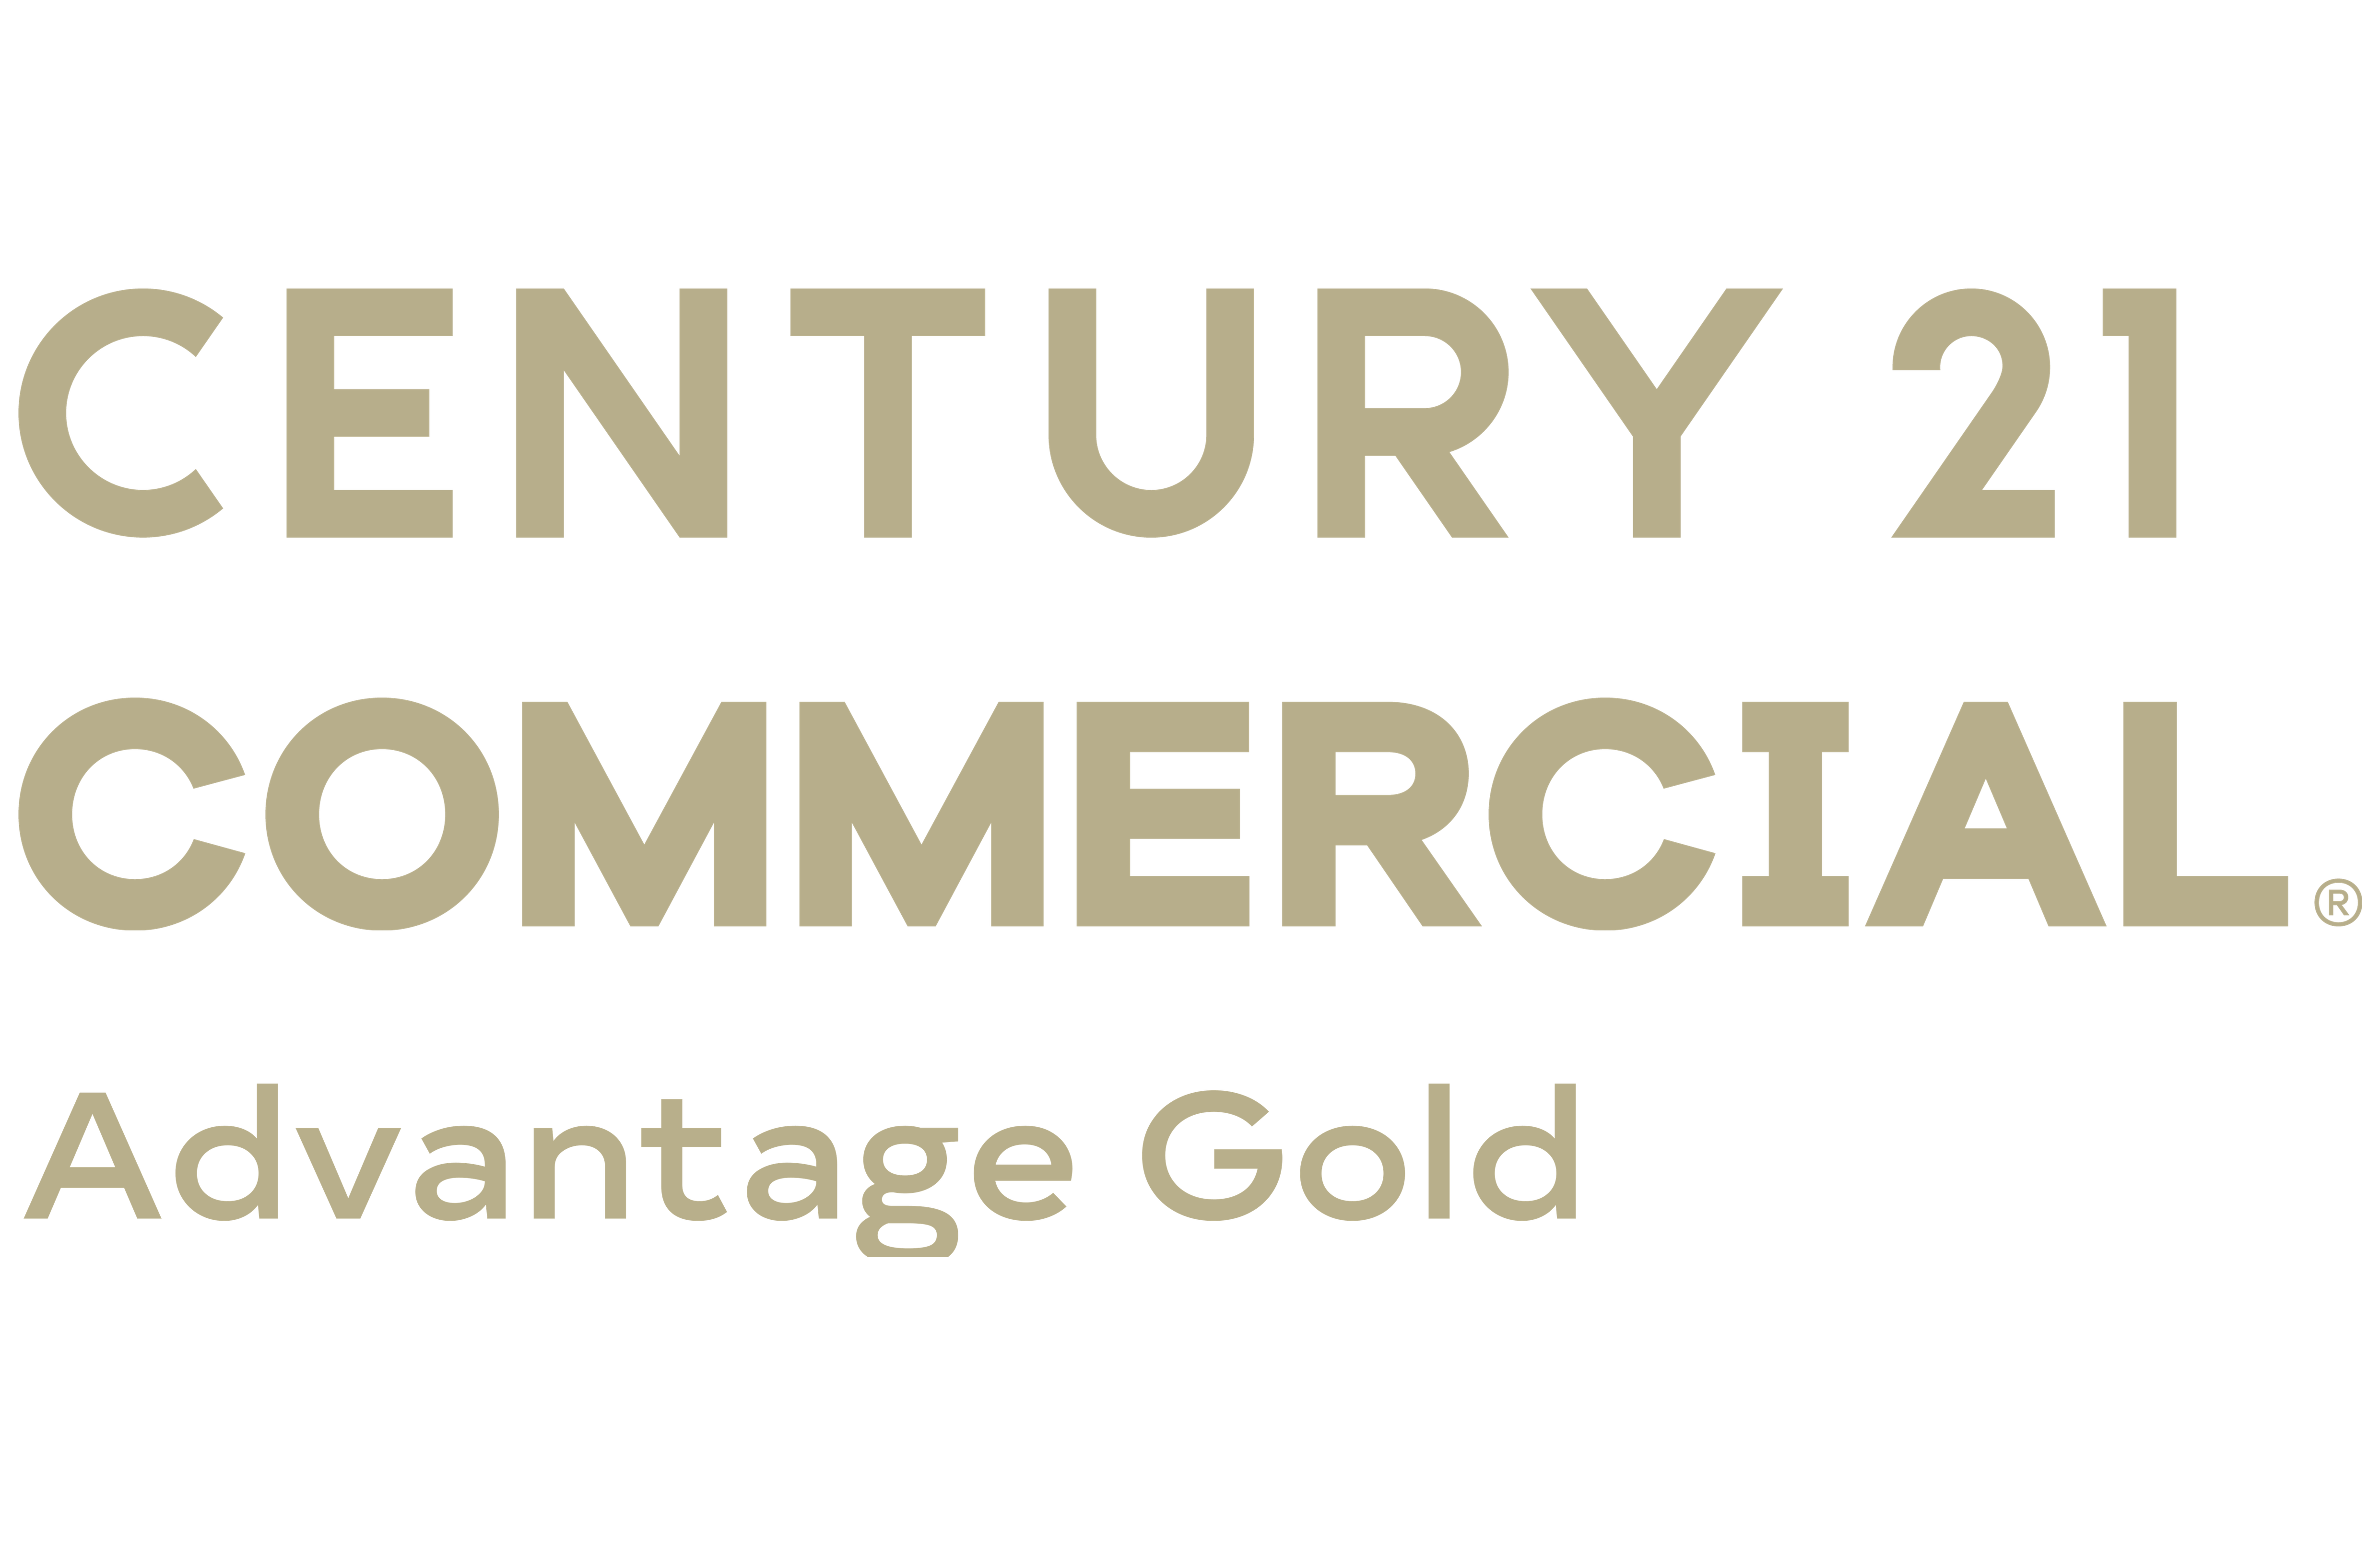 Paula Capati of CENTURY 21 Advantage Gold logo